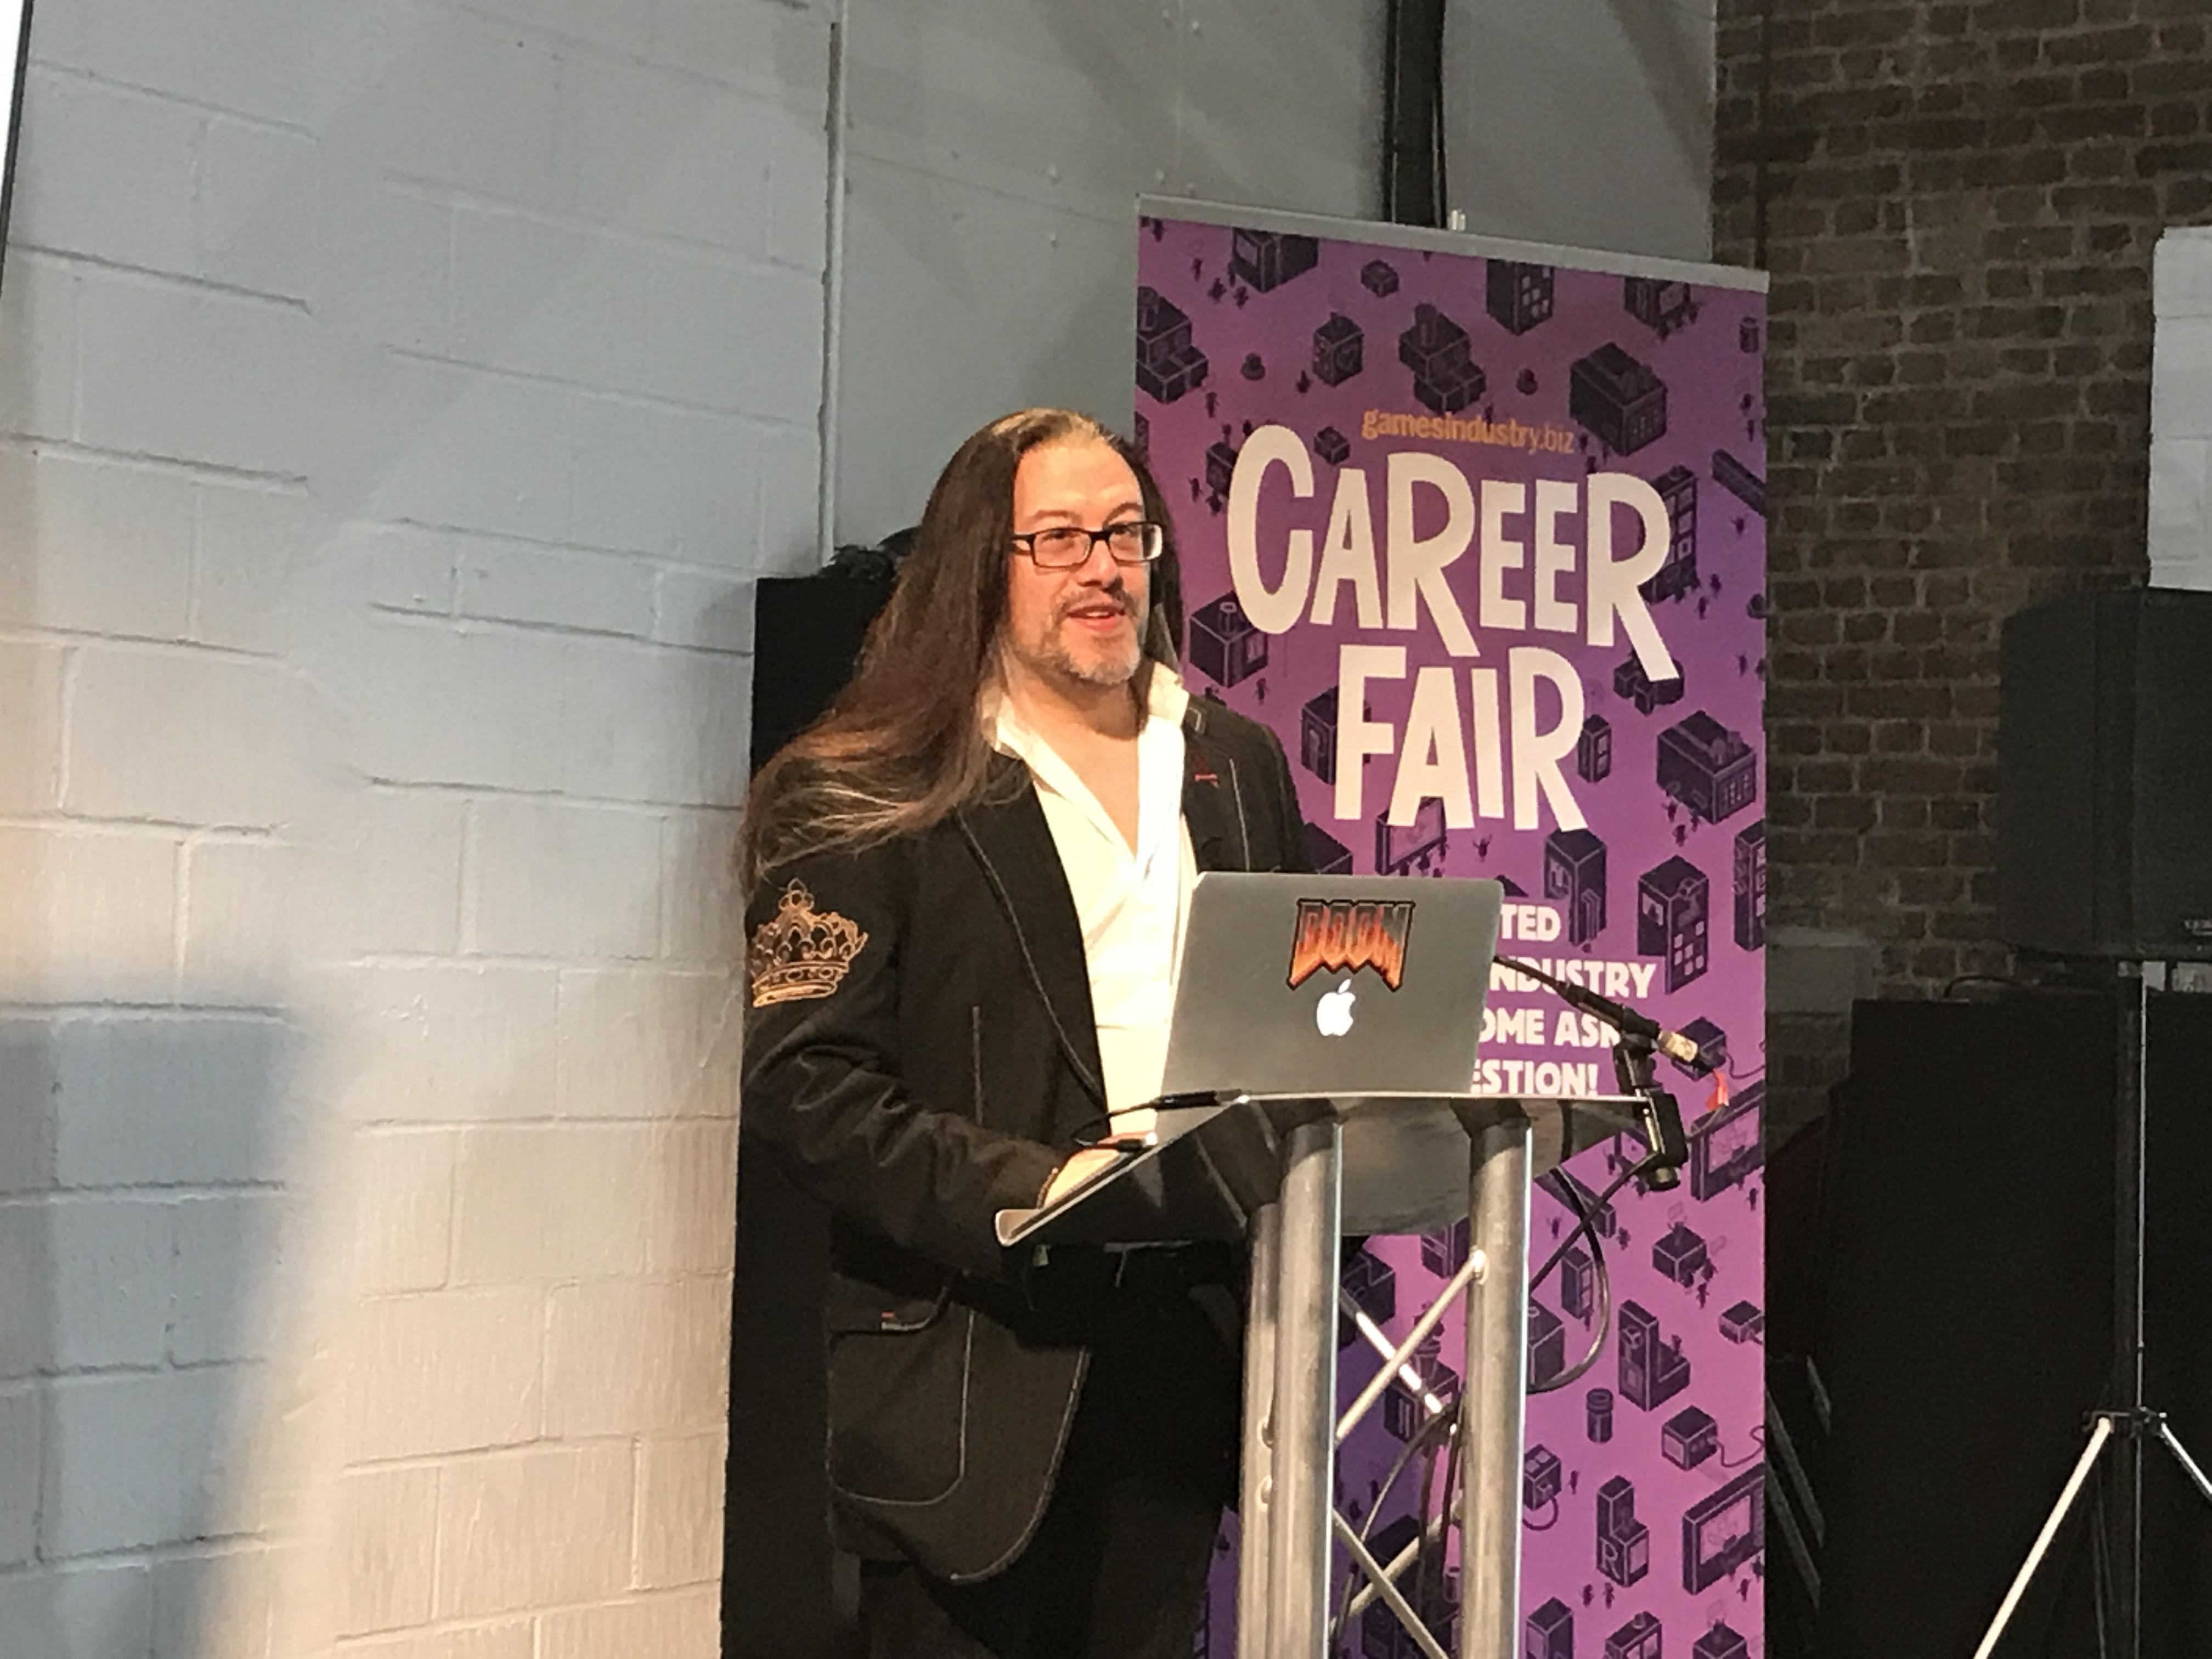 """John Romero: """"There are always people who question games that push the boundaries"""""""